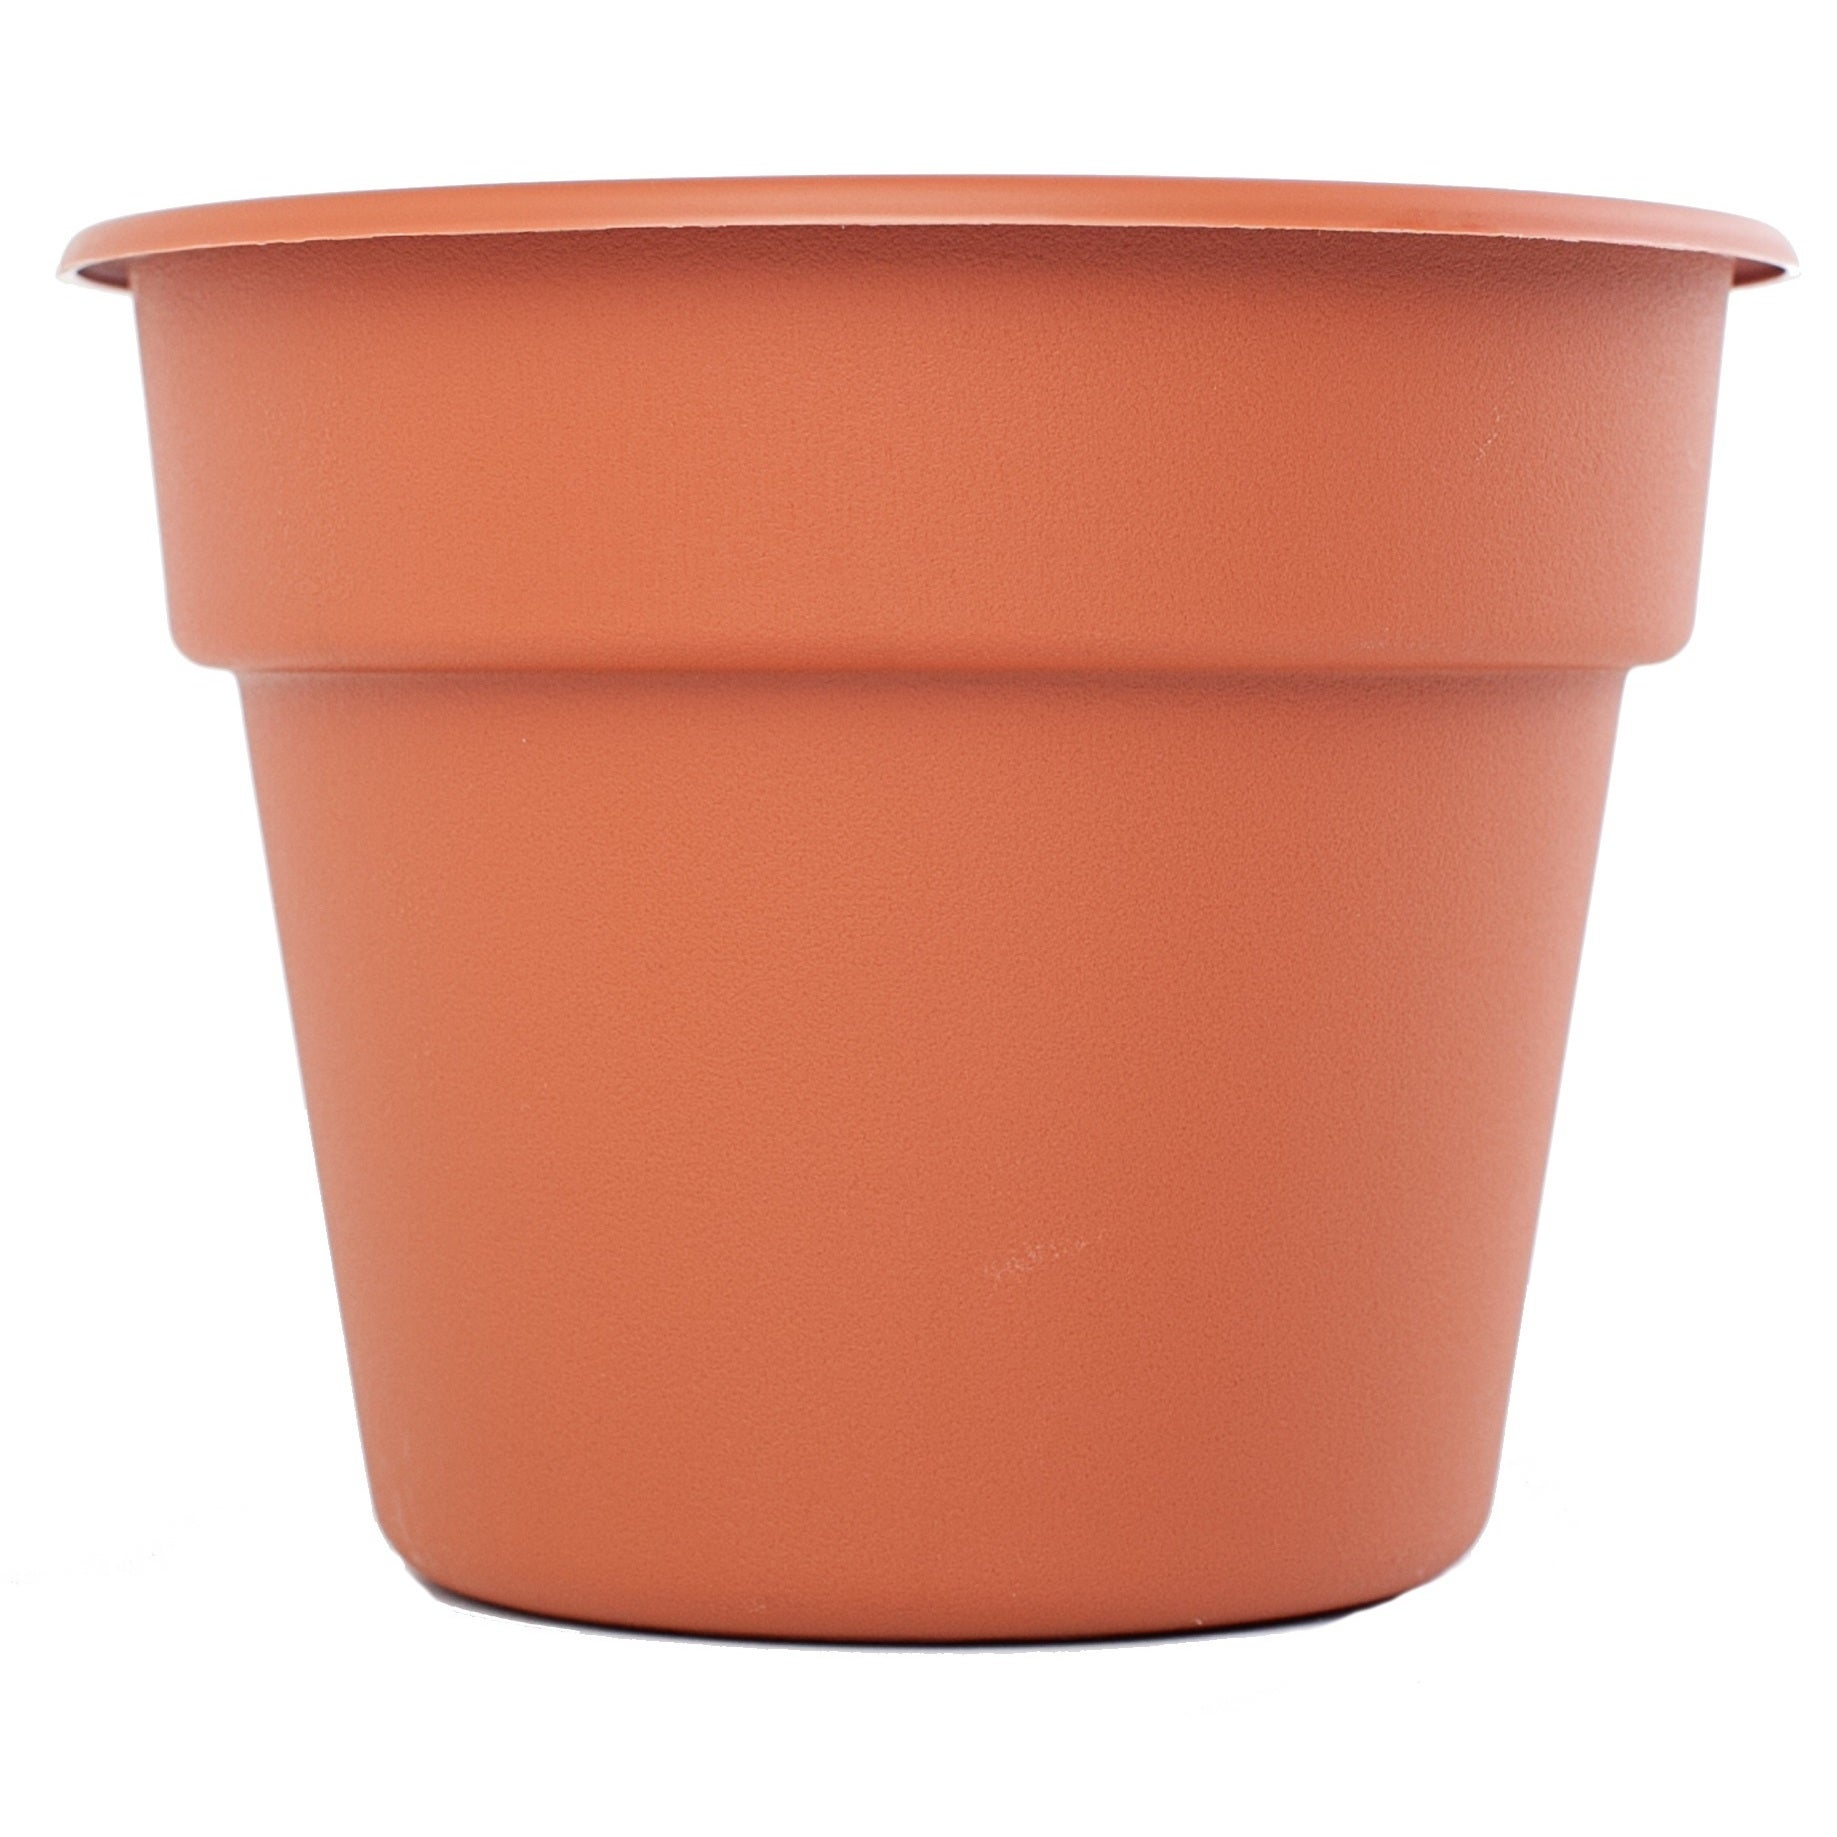 Bloem Dura Cotta Terra Cotta Planter (Pack of 12) (14), O...